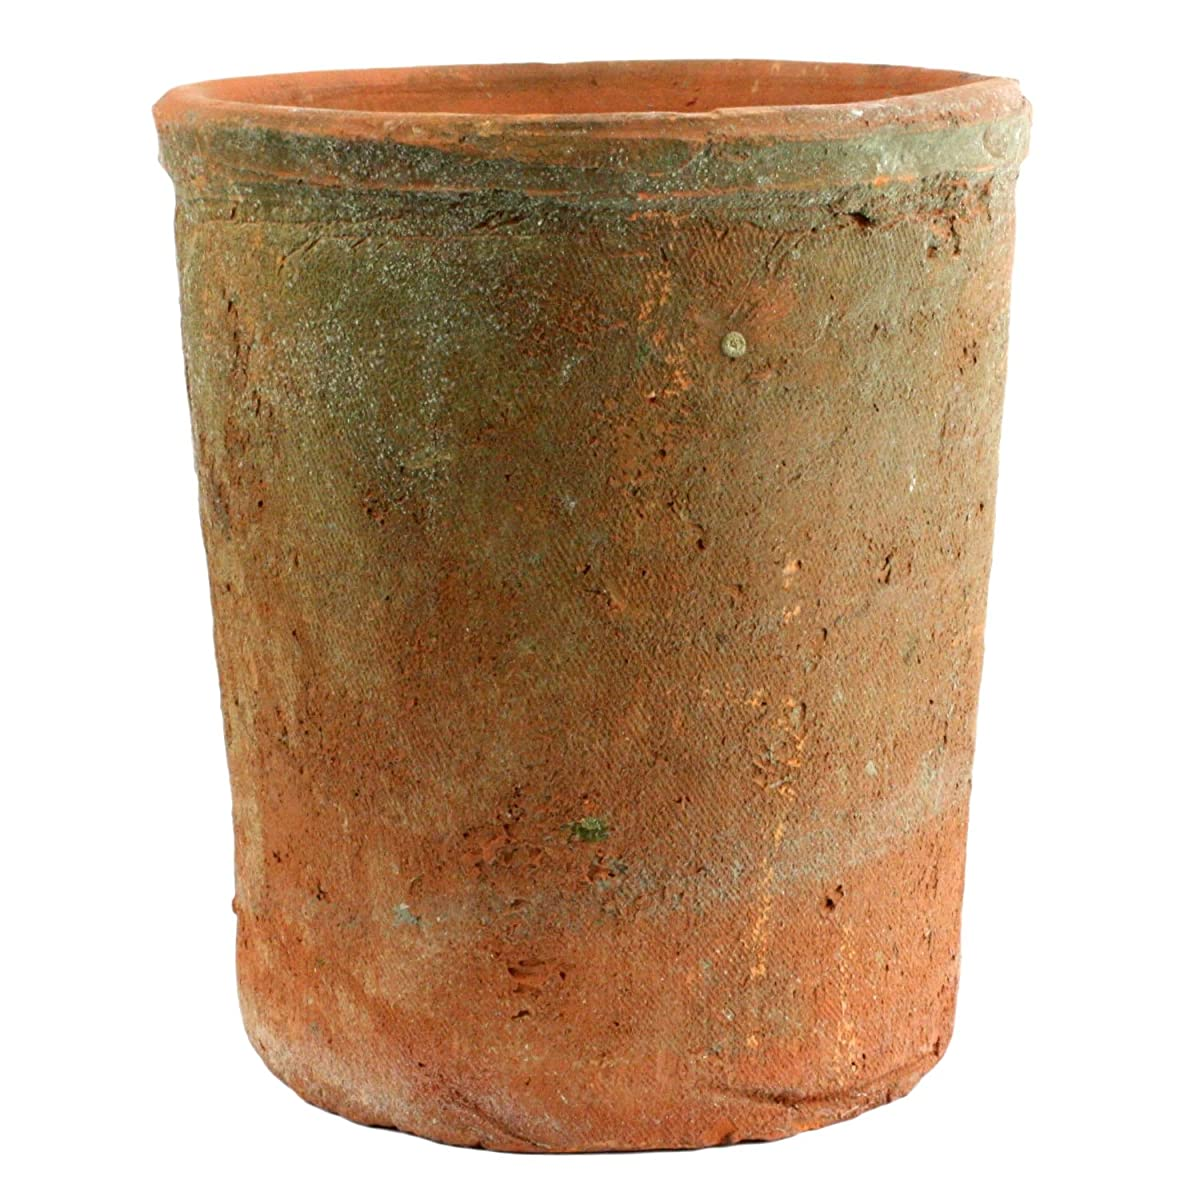 Rustic Terra Cotta Cylinder, Large, Natural, 1-Count